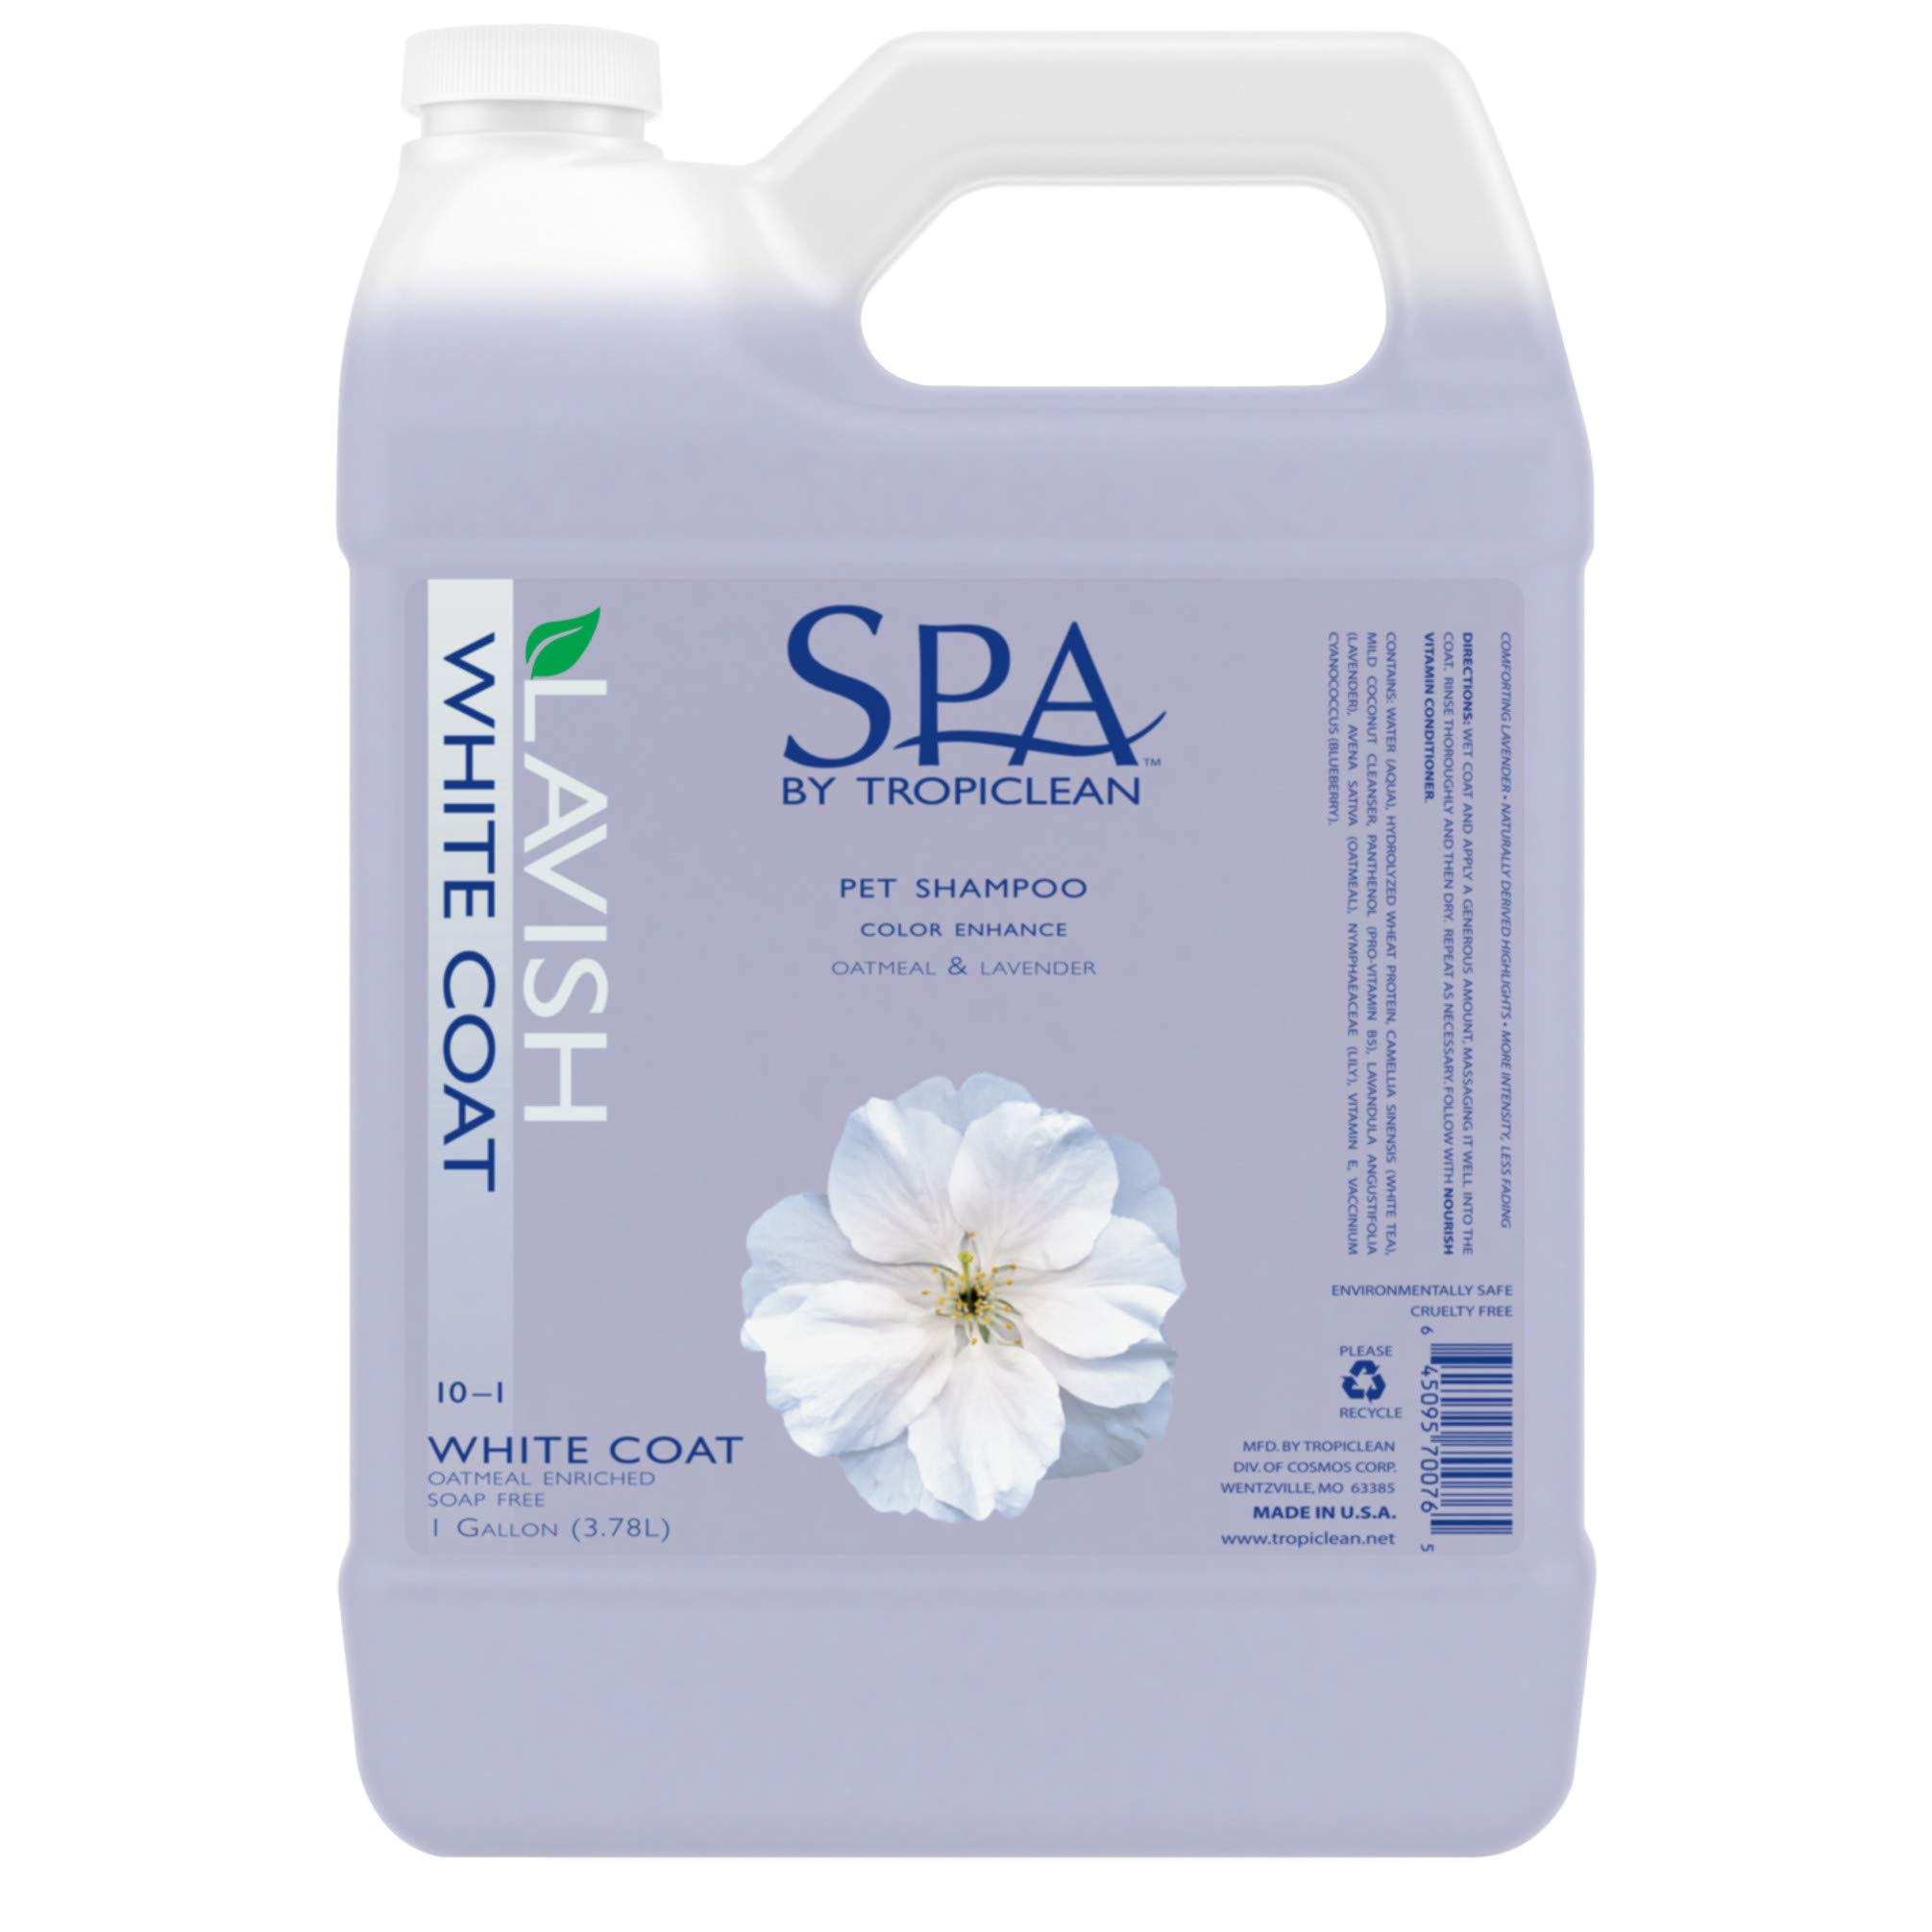 SPA by TropiClean White Coat Shampoo for Pets, 1 gal, Made in USA by TropiClean